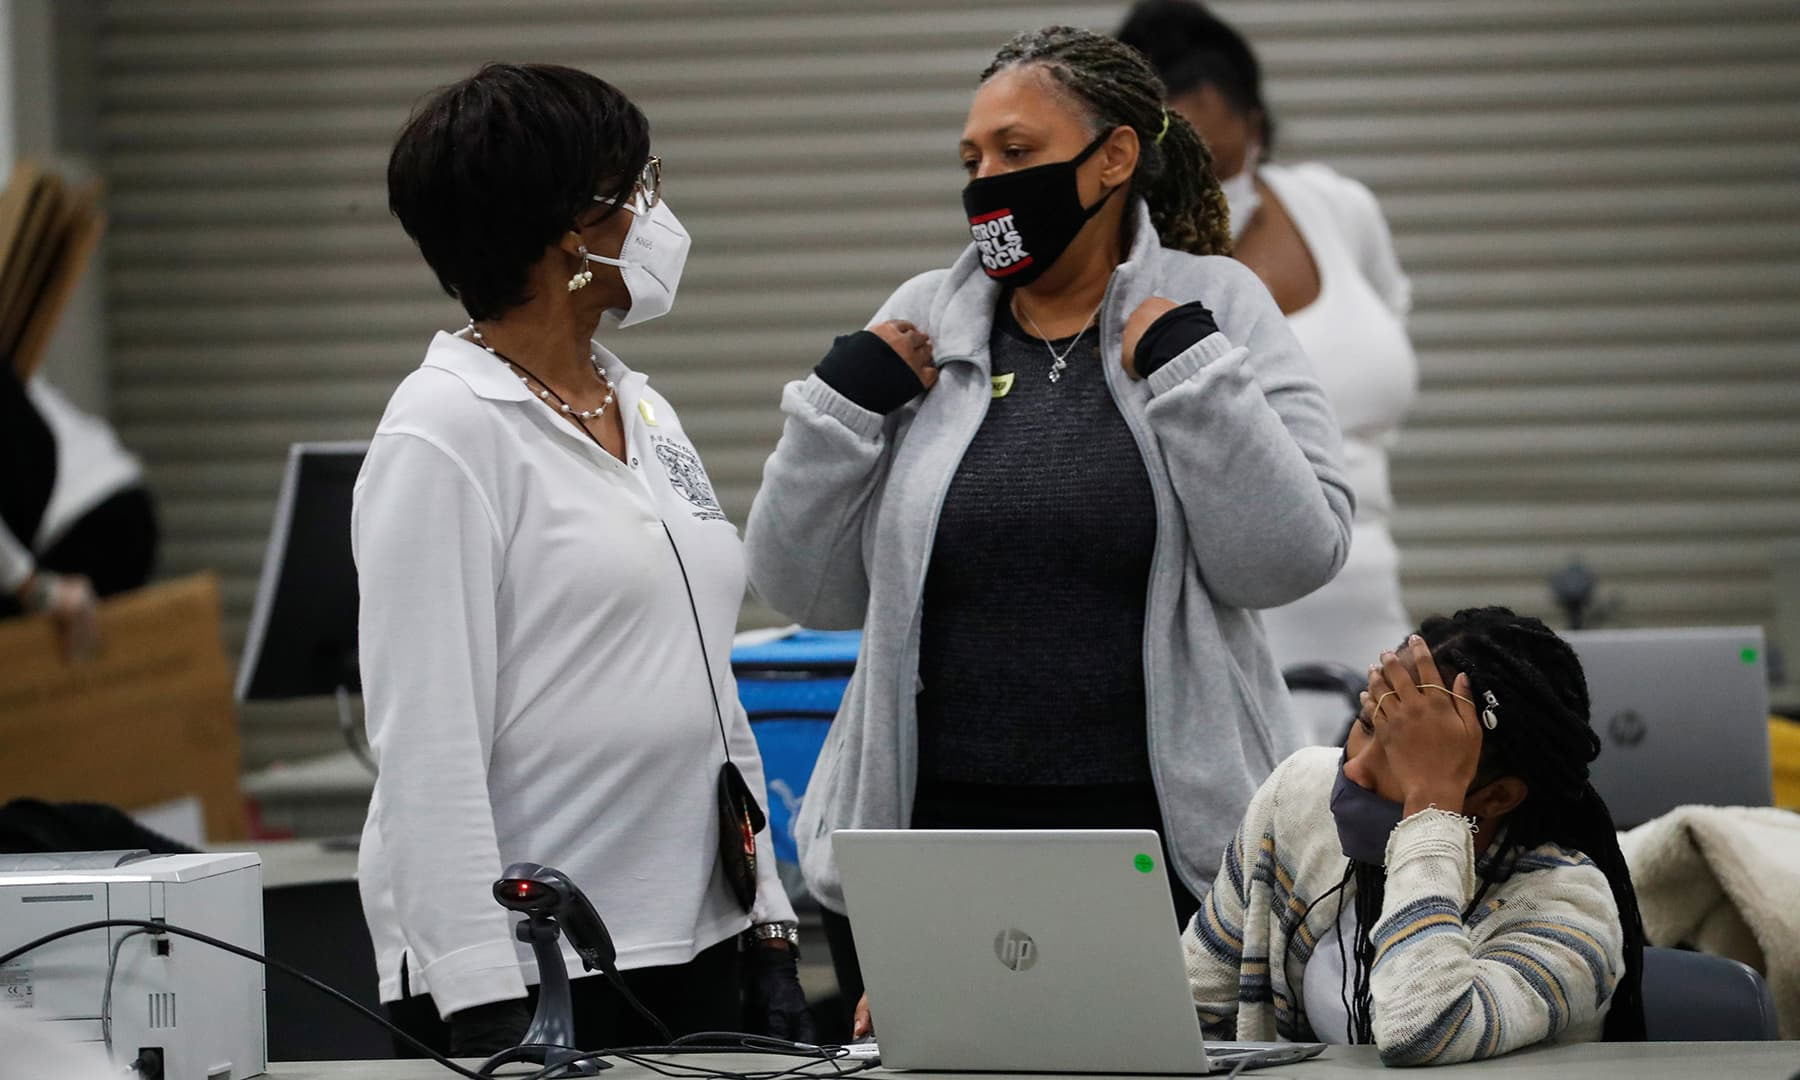 Poll workers speak as votes continue to be counted at the TCF Centre the day after the 2020 US presidential election, in Detroit, on November 4. — Reuters